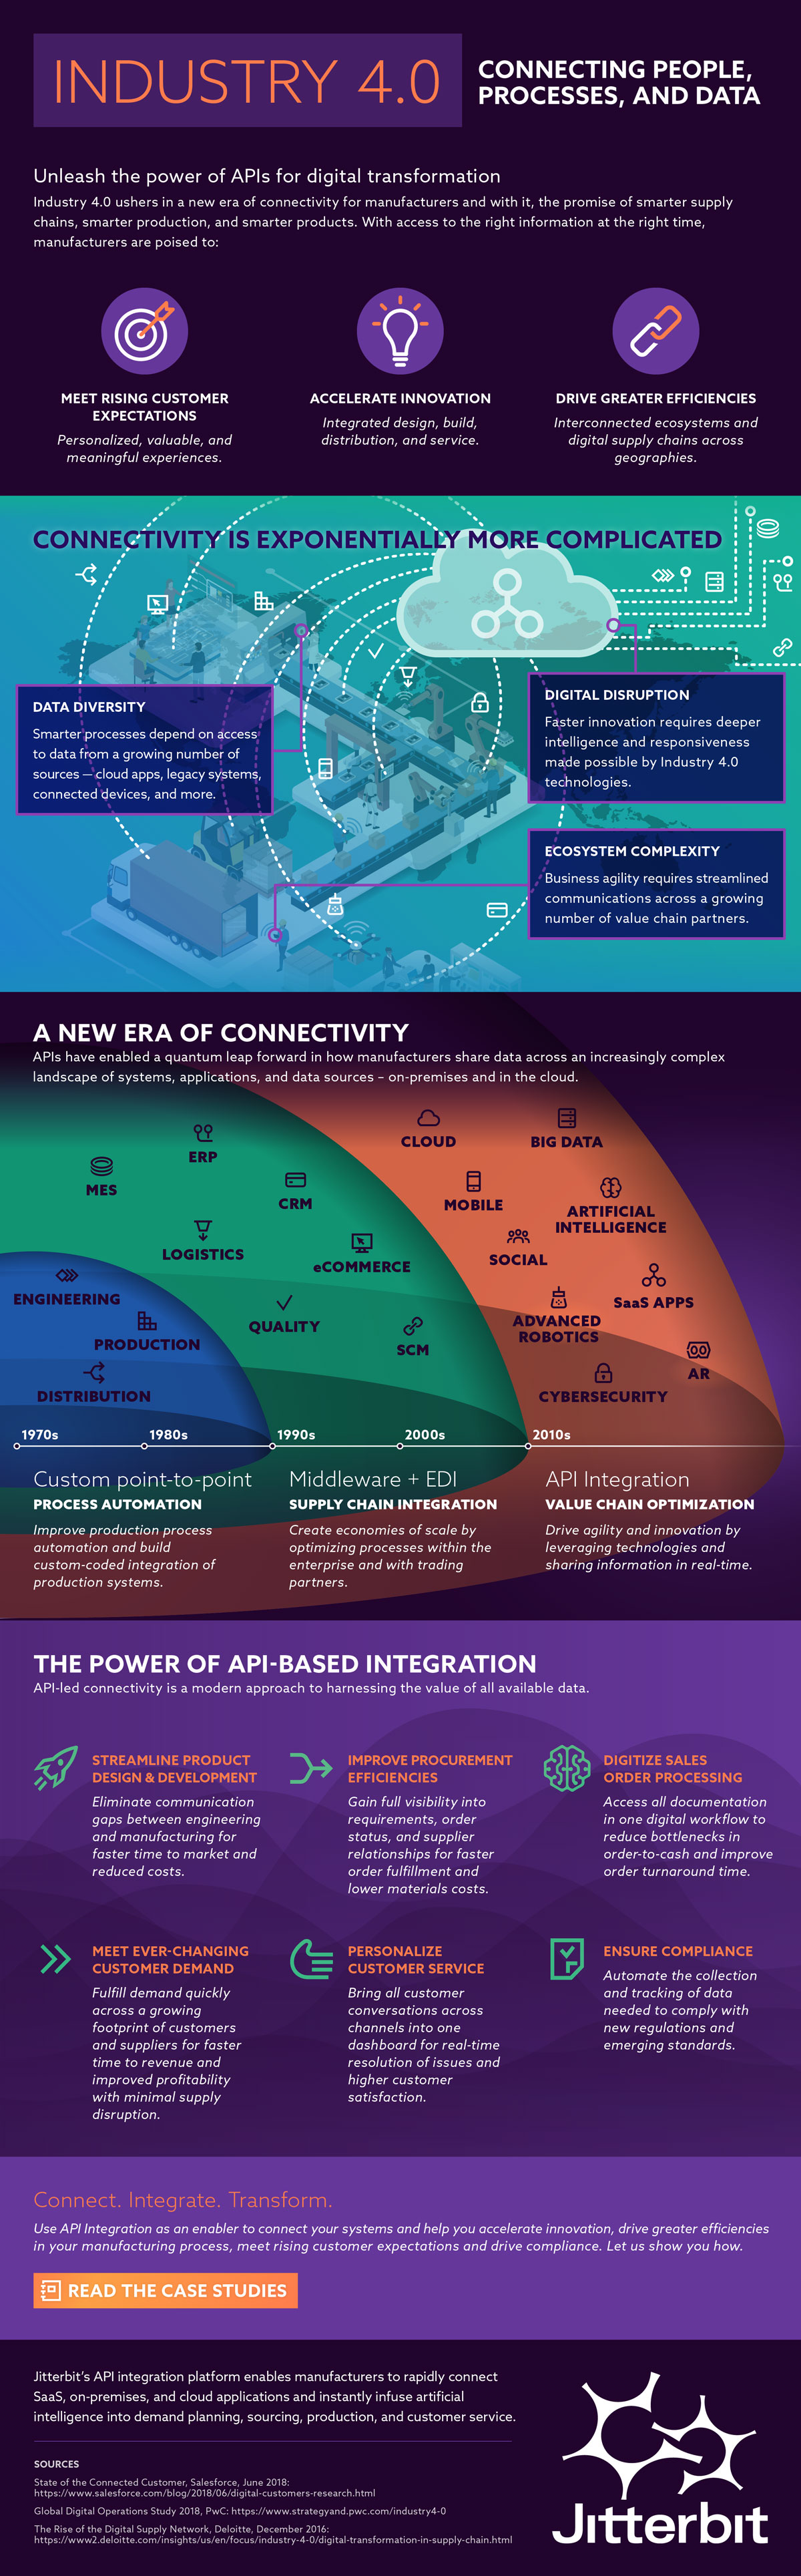 infographic image showing industry 4.0 connectivity for manufacturers, and the powerful role of API-based data integration in that.